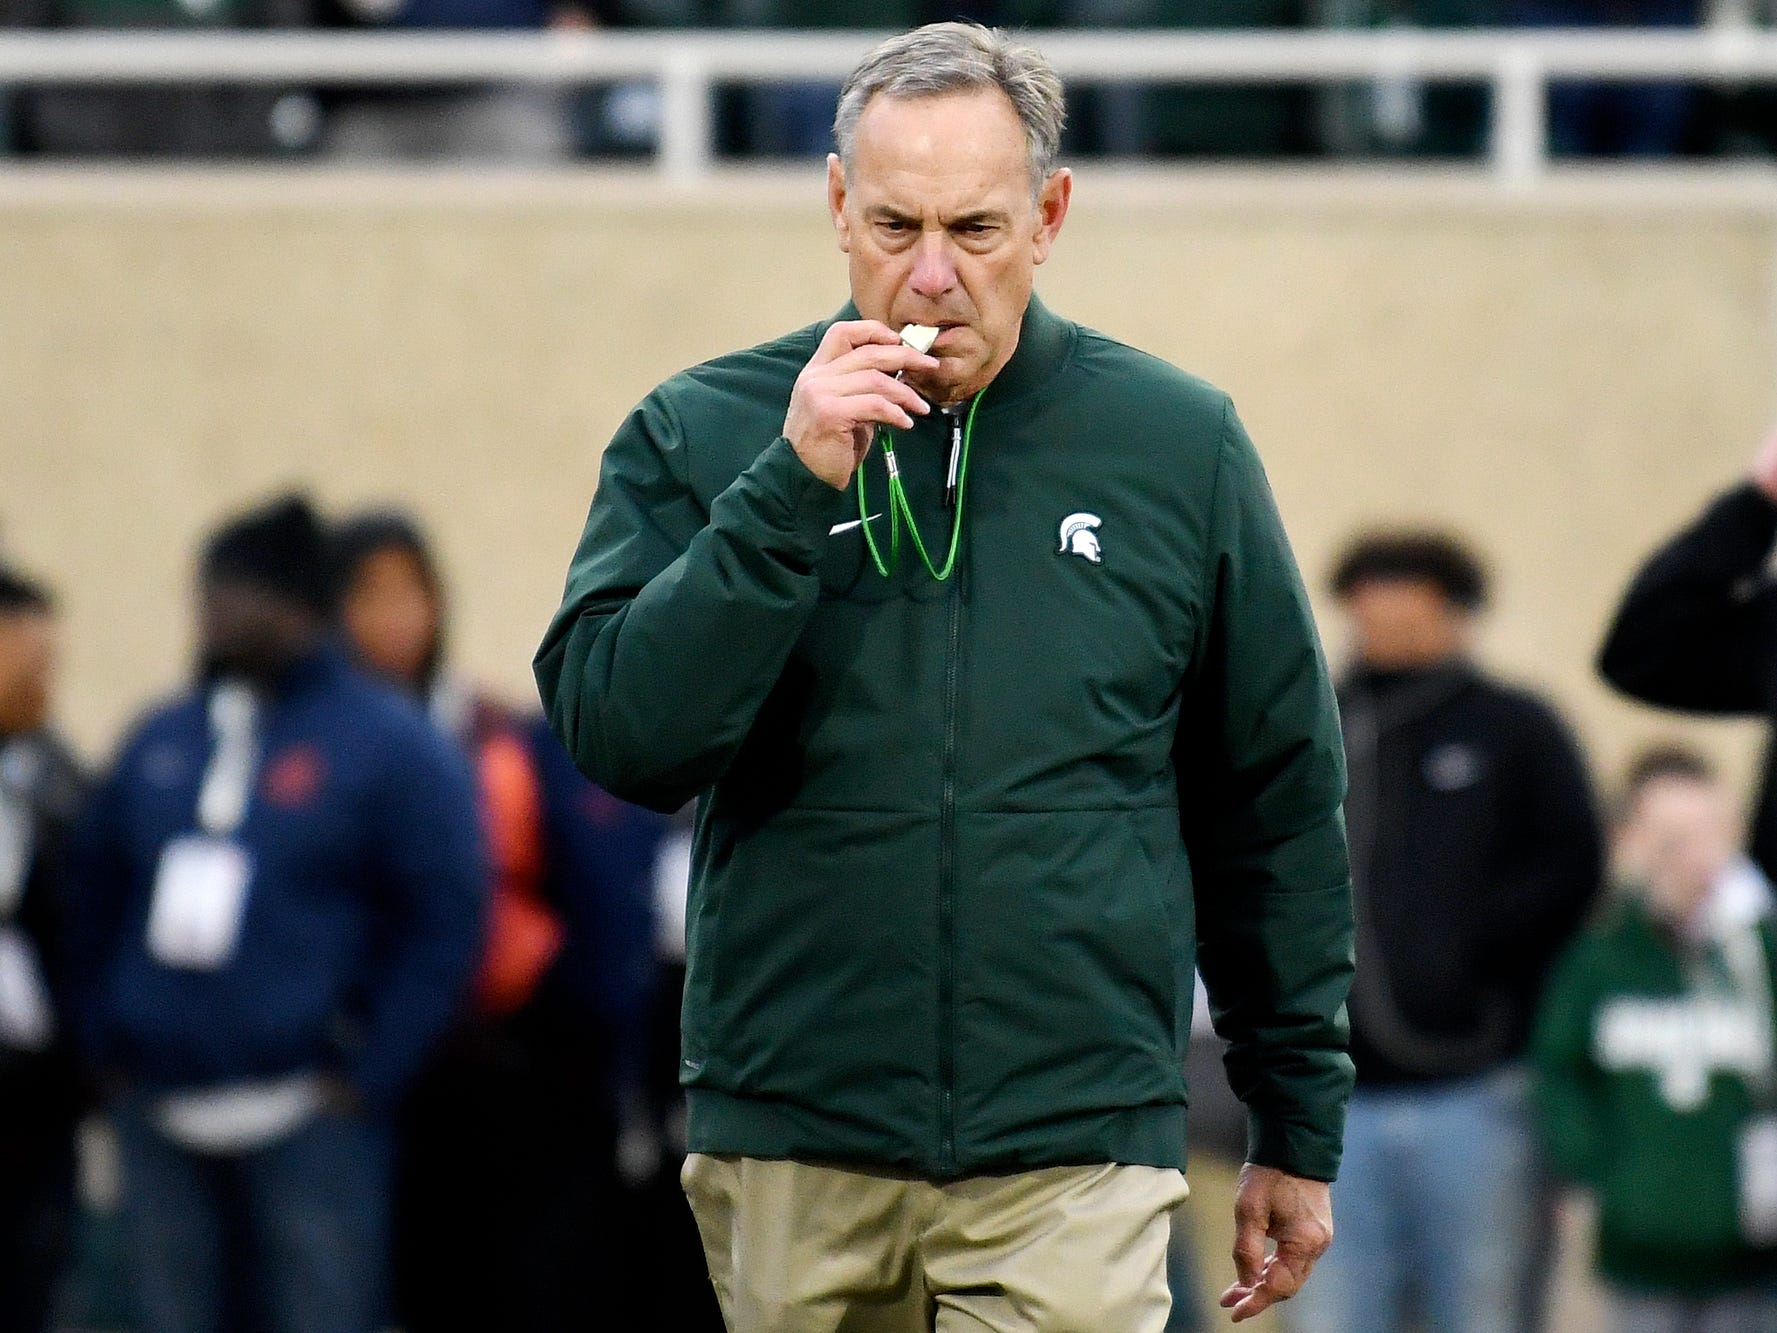 Michigan State head coach Mark Dantonio works with the team before the game against Rutgers on Saturday, Nov. 24, 2018, at Spartan Stadium in East Lansing.